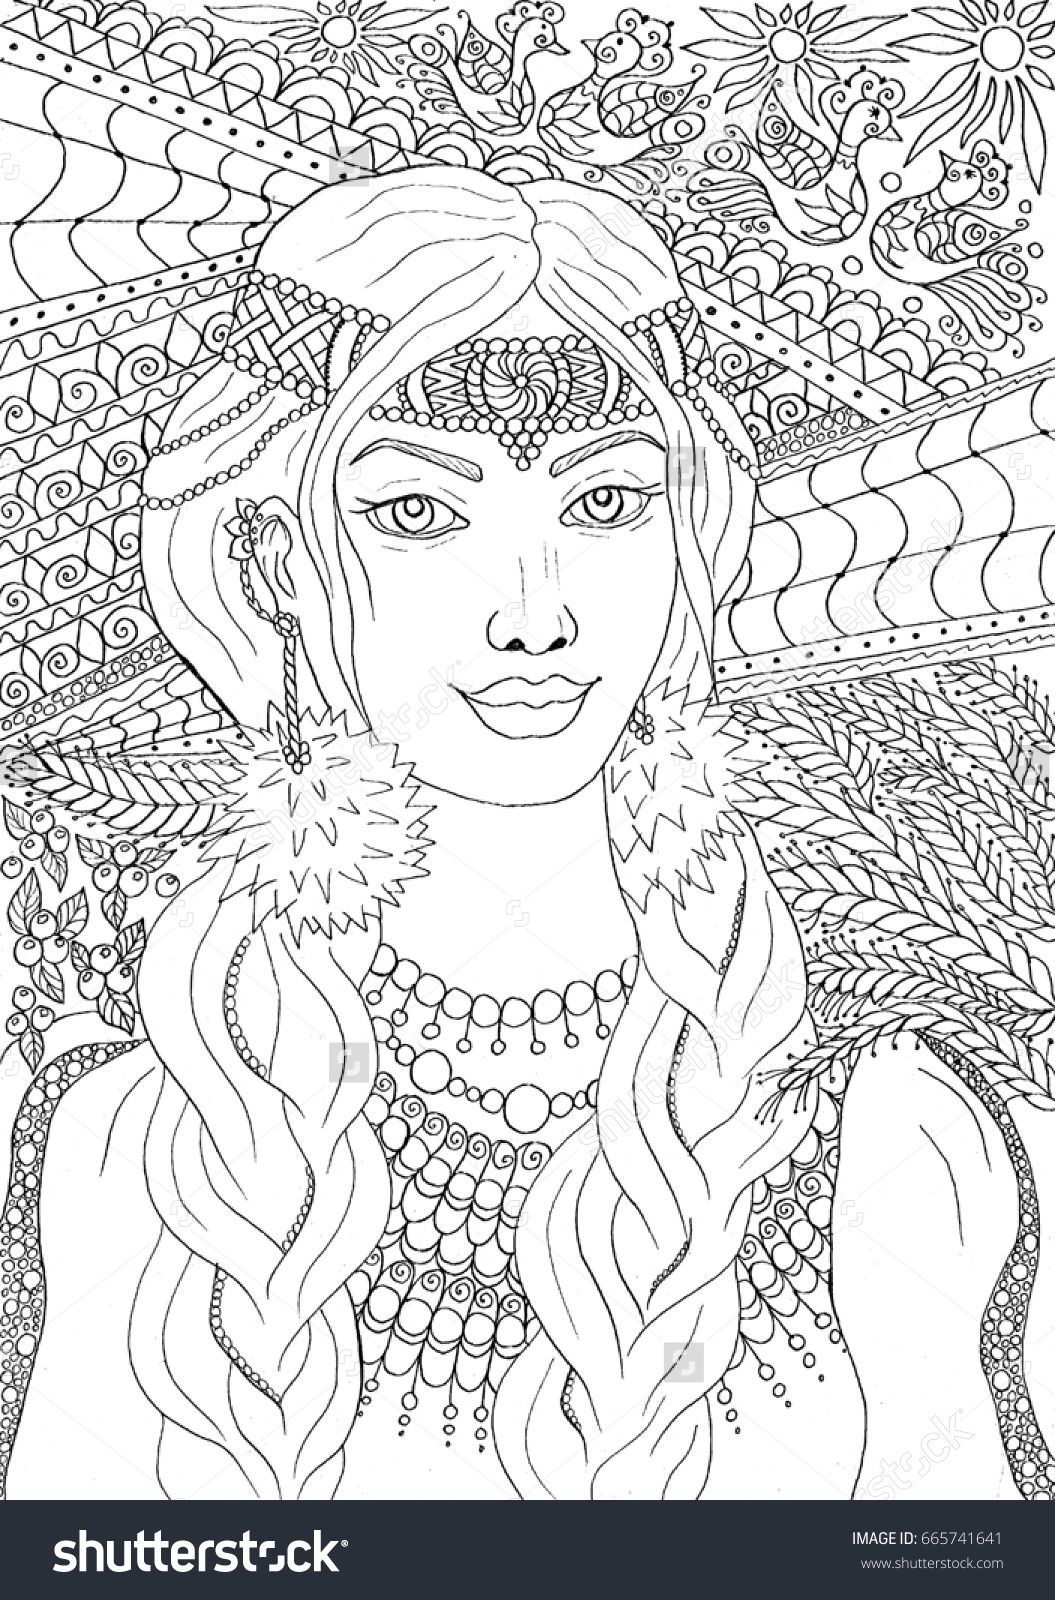 Coloring Pages Of Women  to Print 5c - Save it to your computer